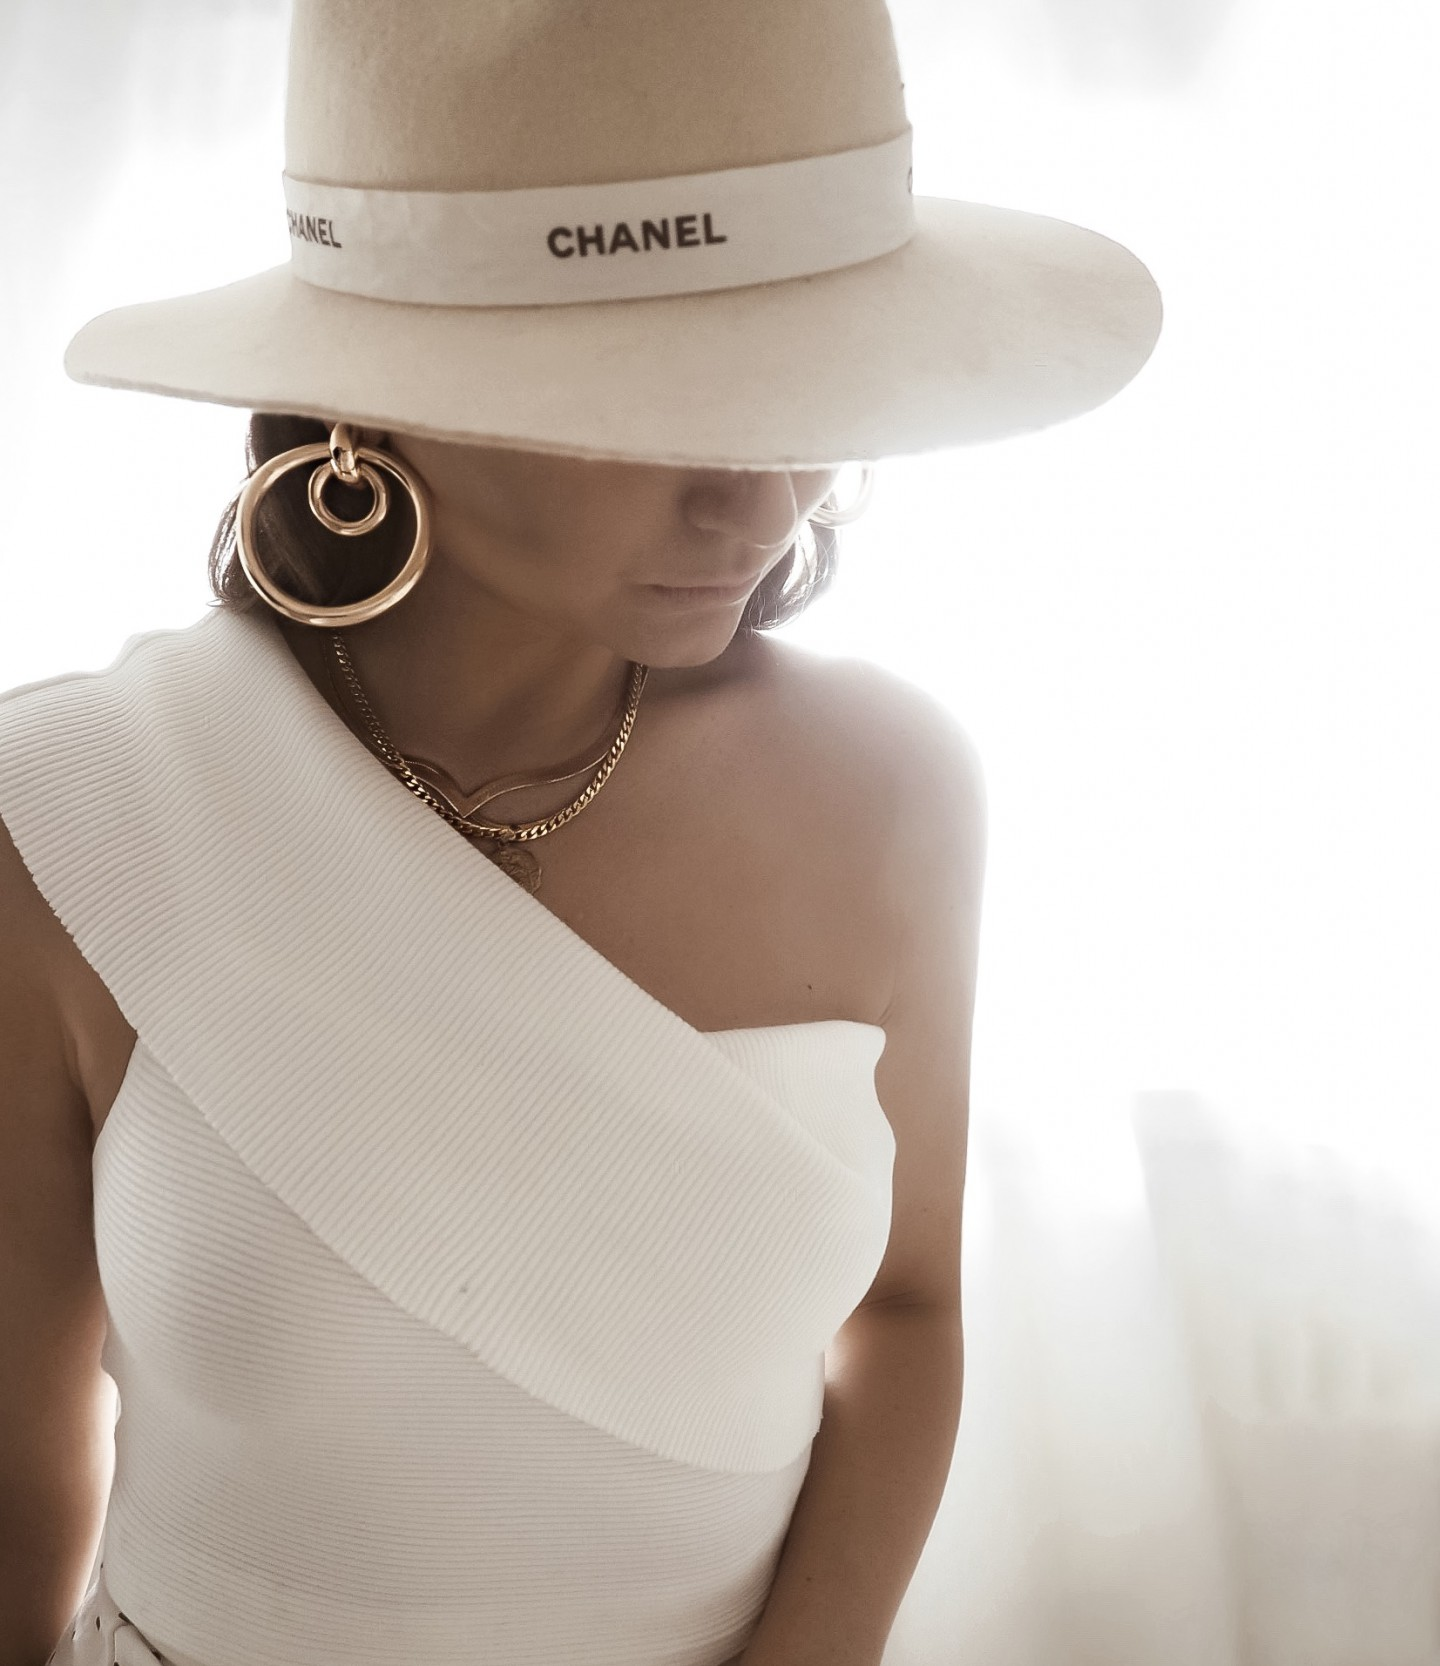 HOW TO REUSE CHANEL RIBBONS